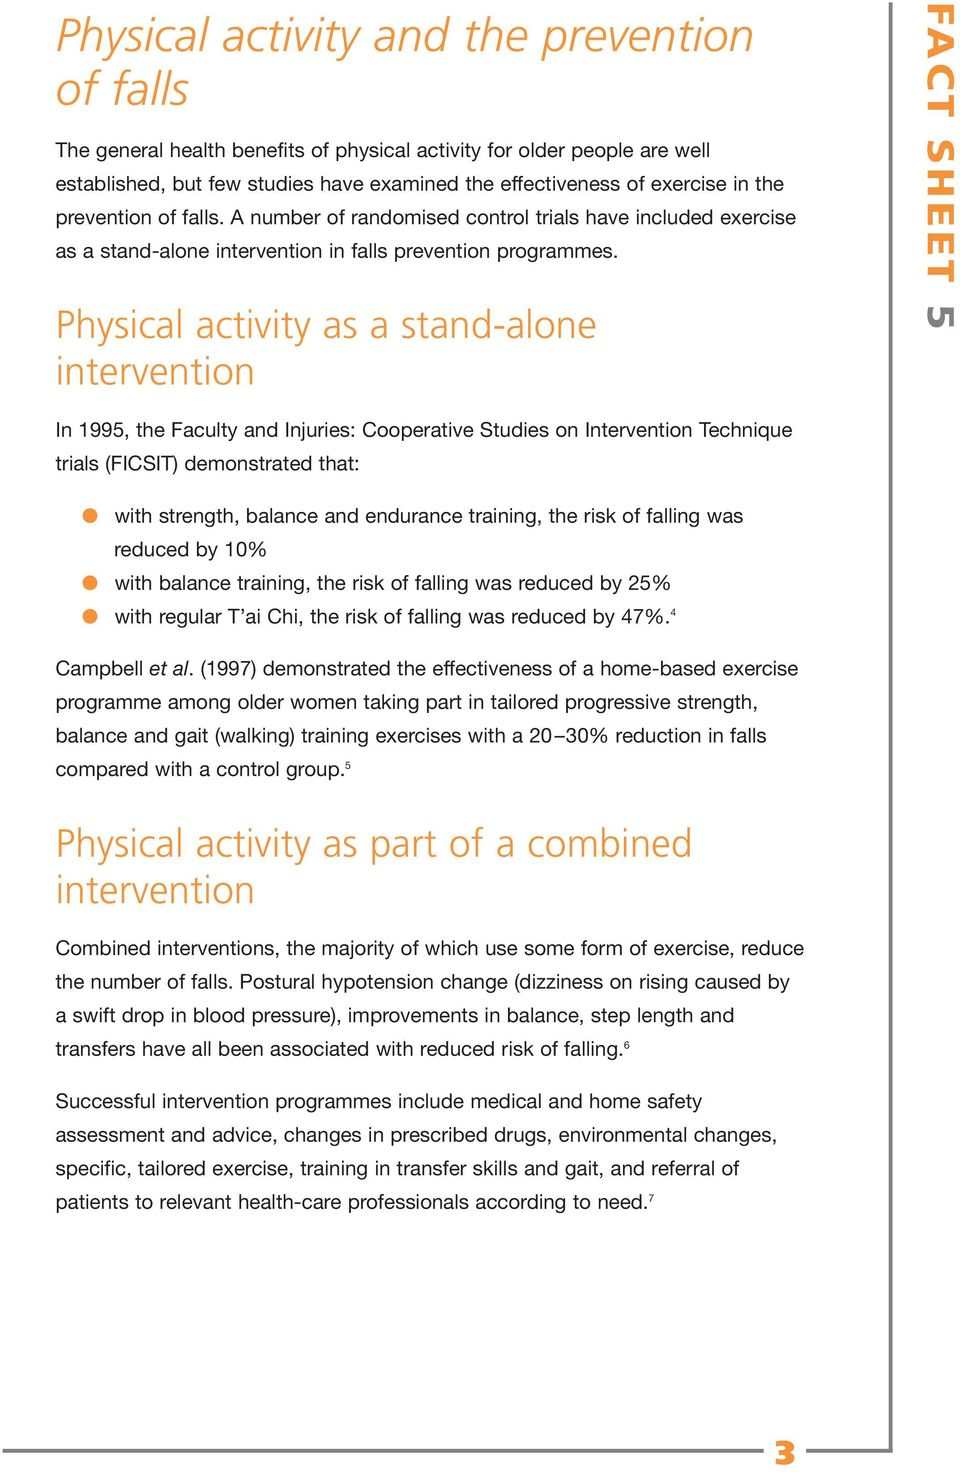 Physical activity as a stand-alone intervention FACT SHEET 5 In 1995, the Faculty and Injuries: Cooperative Studies on Intervention Technique trials (FICSIT) demonstrated that: with strength, balance